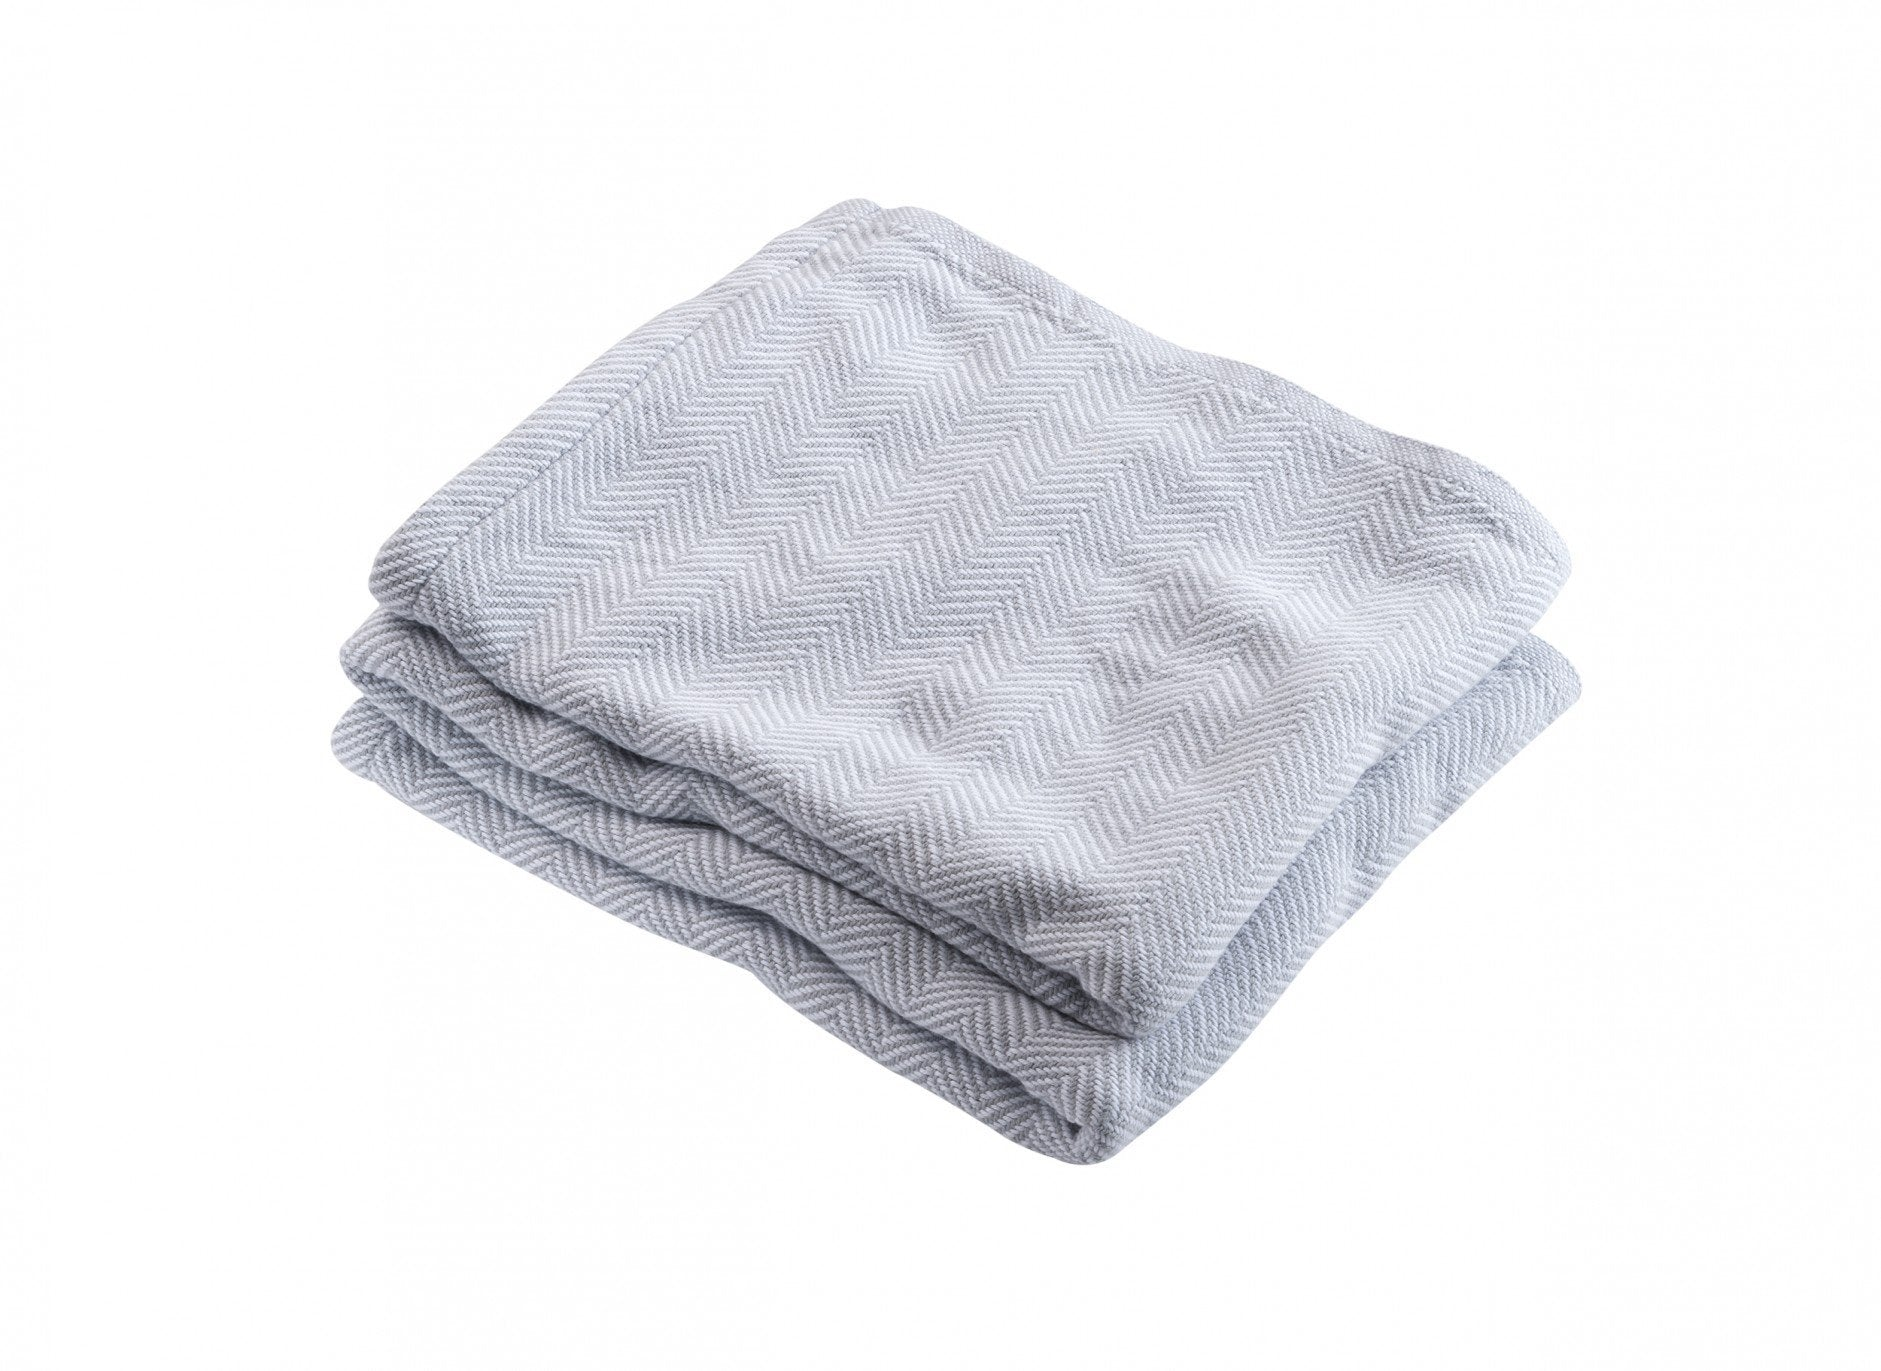 Dove Gray Penobscot Herringbone Cotton Blanket by Brahms Mount | Fig Linens